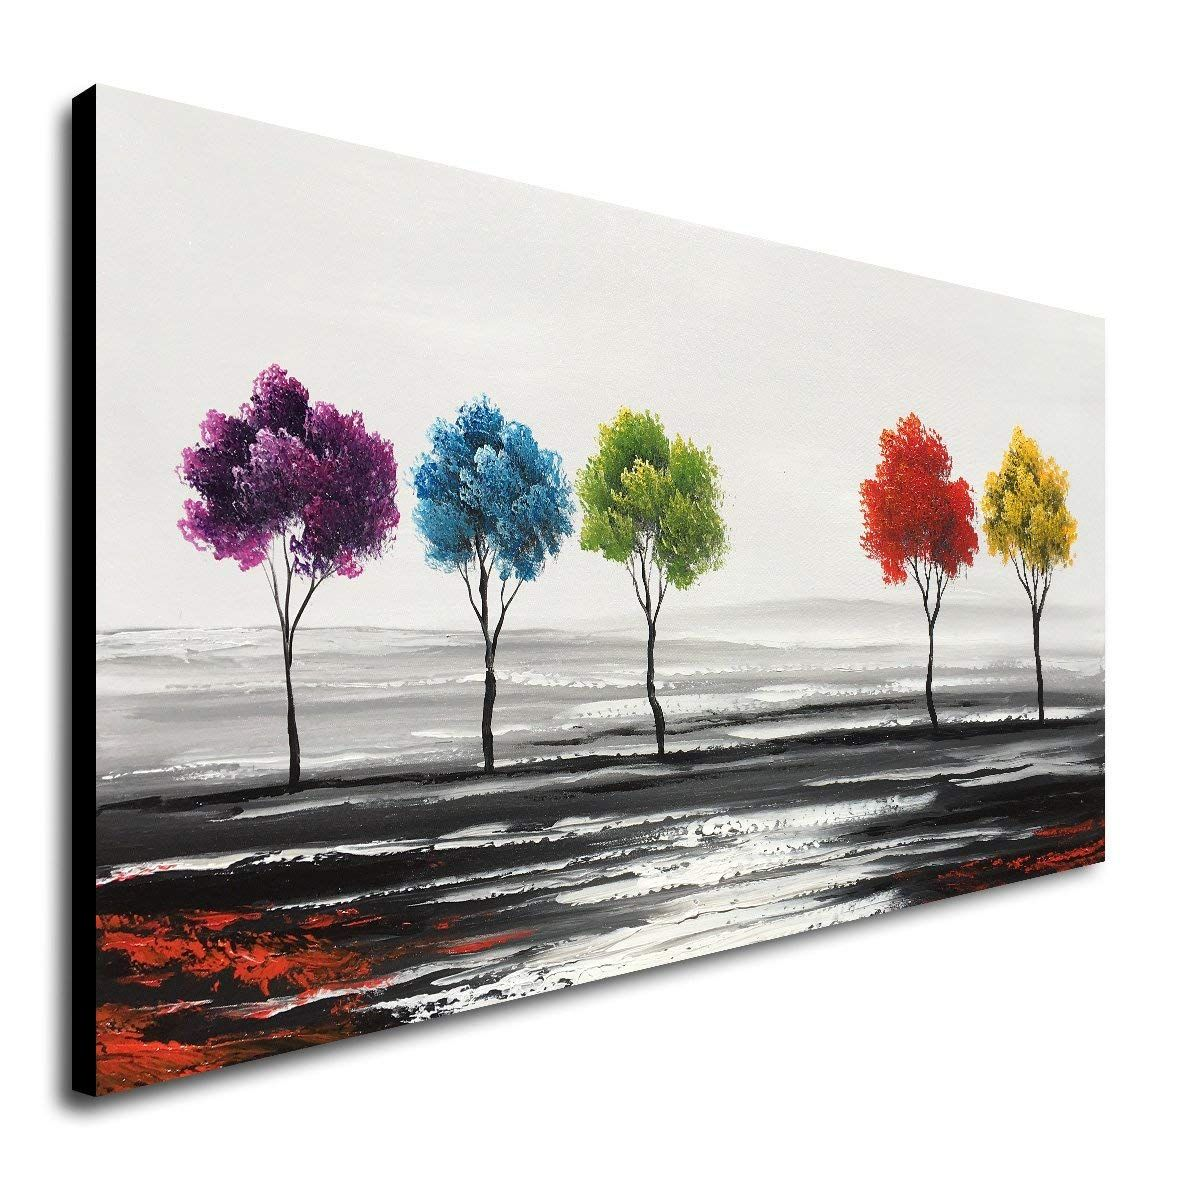 Handmade Colorful Tree Oil Painting On Canvas Modern Abstract Large Landscape Wall Art For Abstract Tree Painting Abstract Canvas Painting Tree Painting Canvas